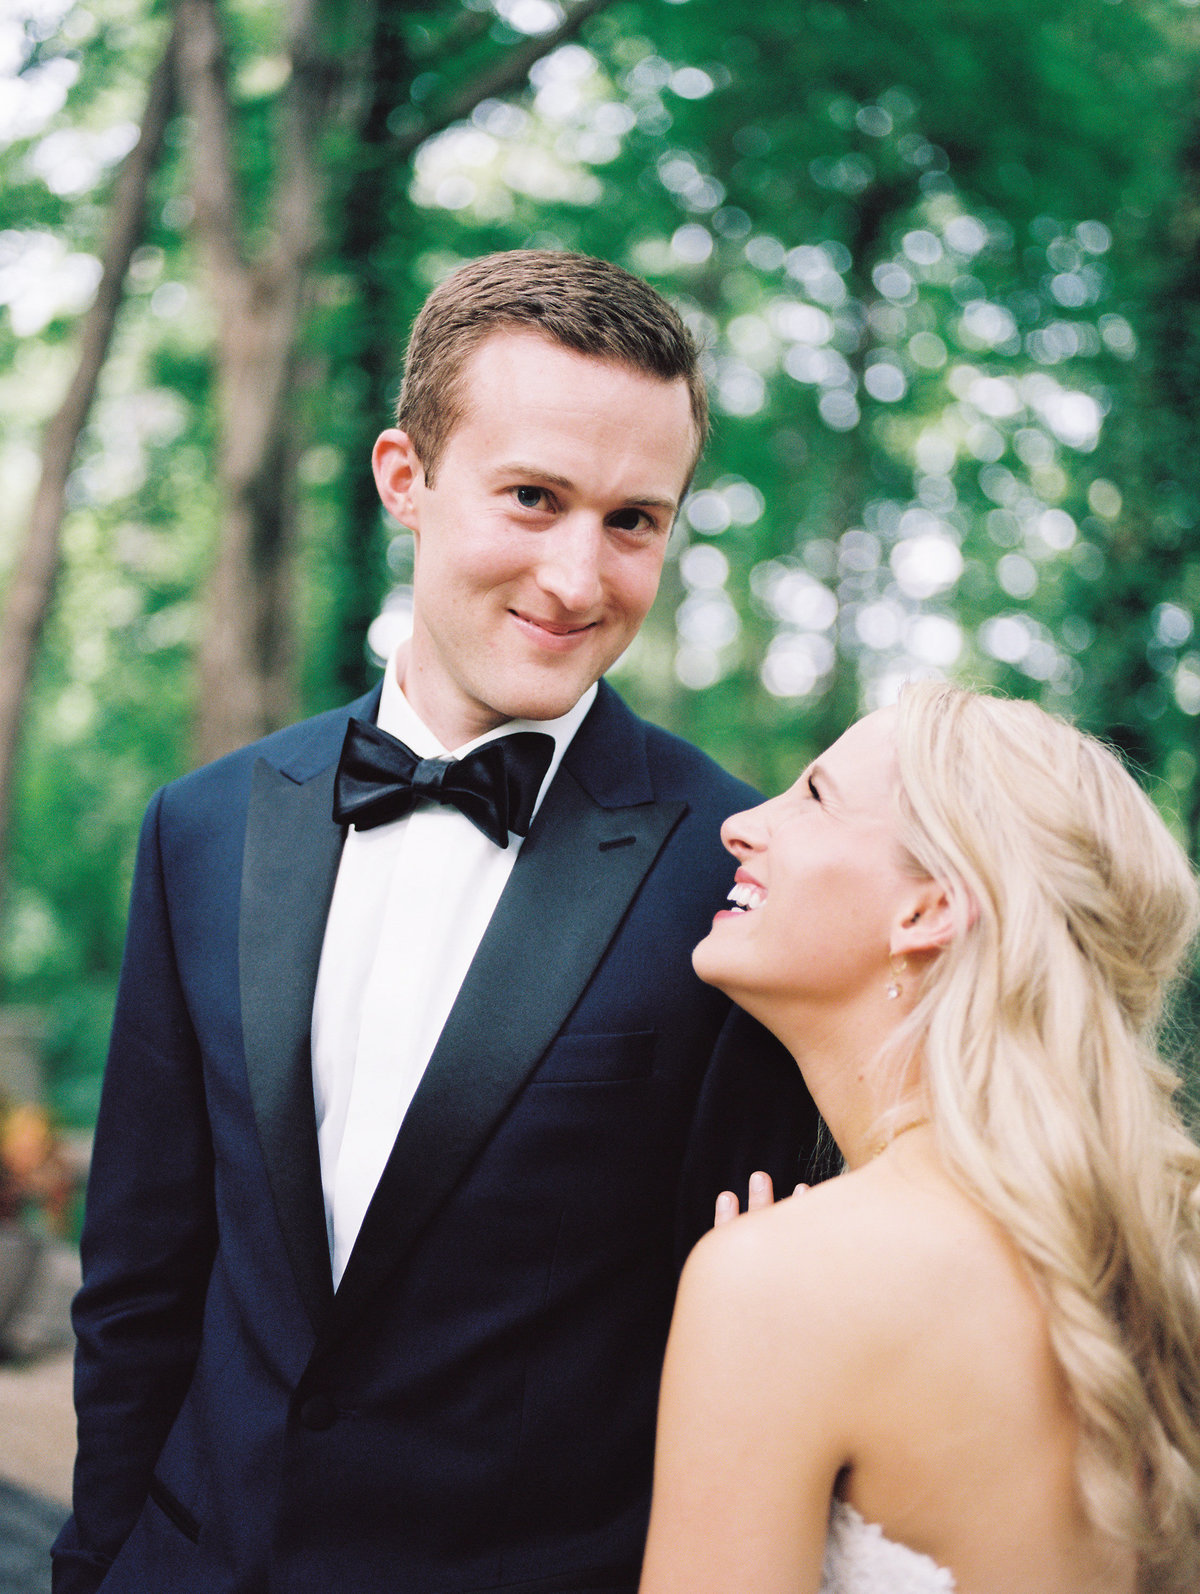 Wedding - Caitlin Sullivan - Indianapolis, Indiana Photographer - Photo - 7